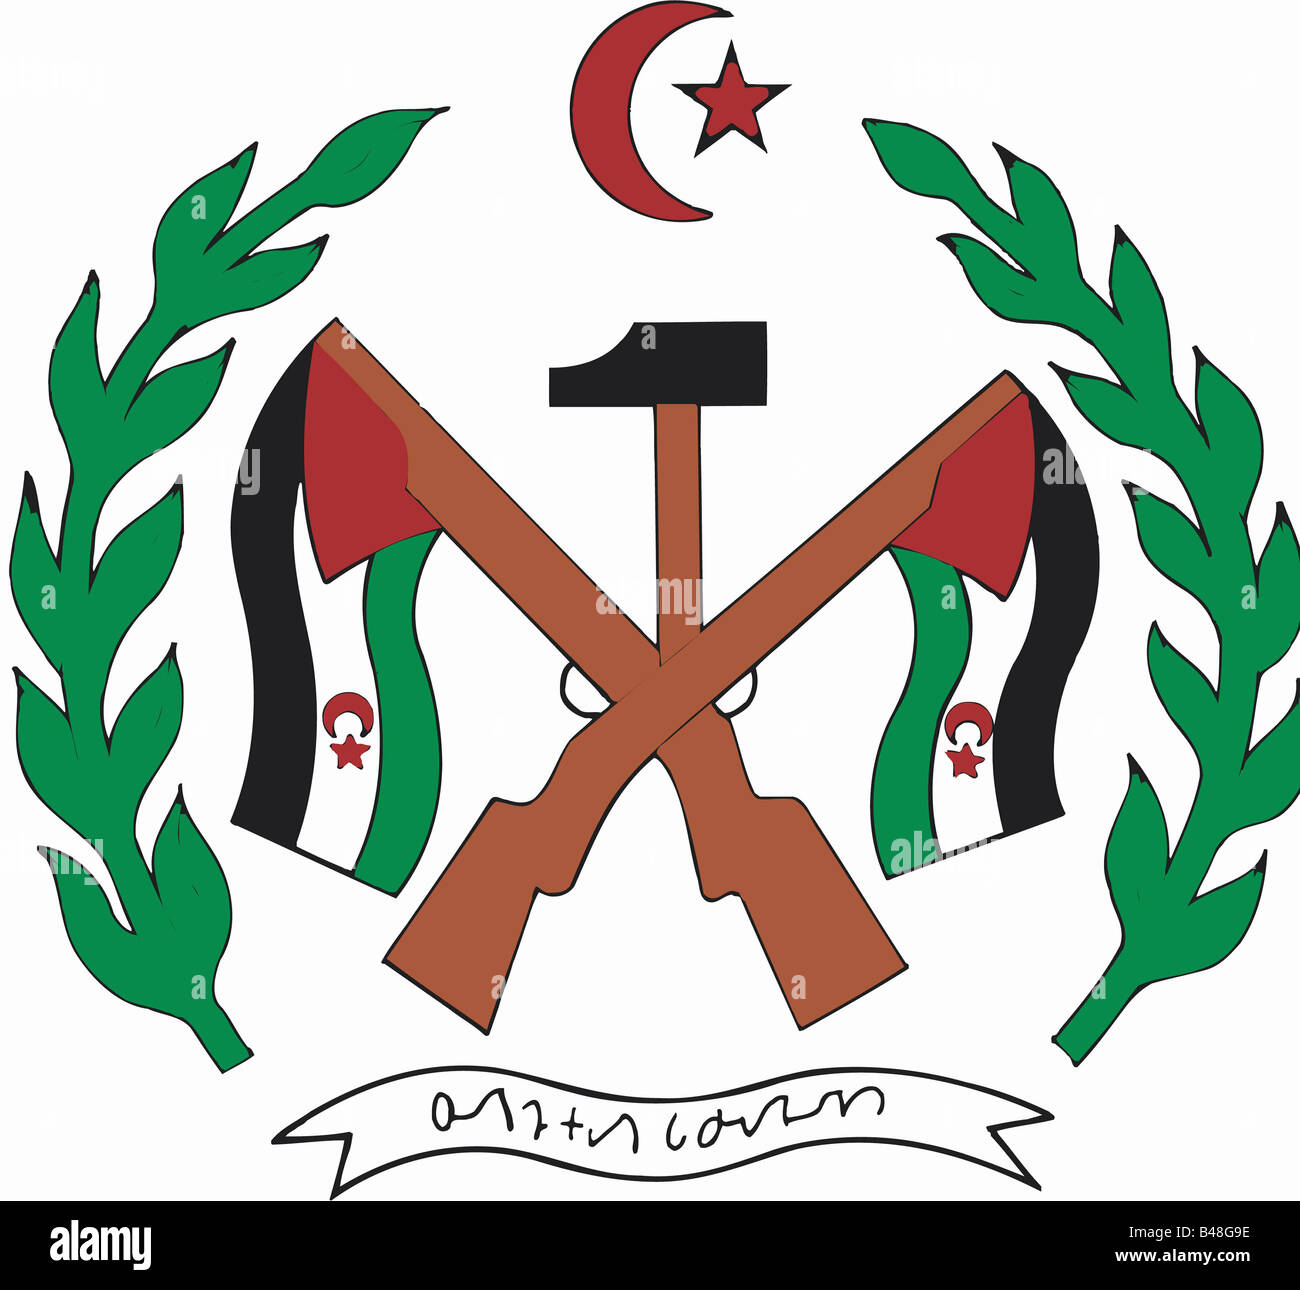 Heraldry emblem western sahara national coat of arms heraldry emblem western sahara national coat of arms introduced 2721976 africa symbol weapons rifles flags hammer buycottarizona